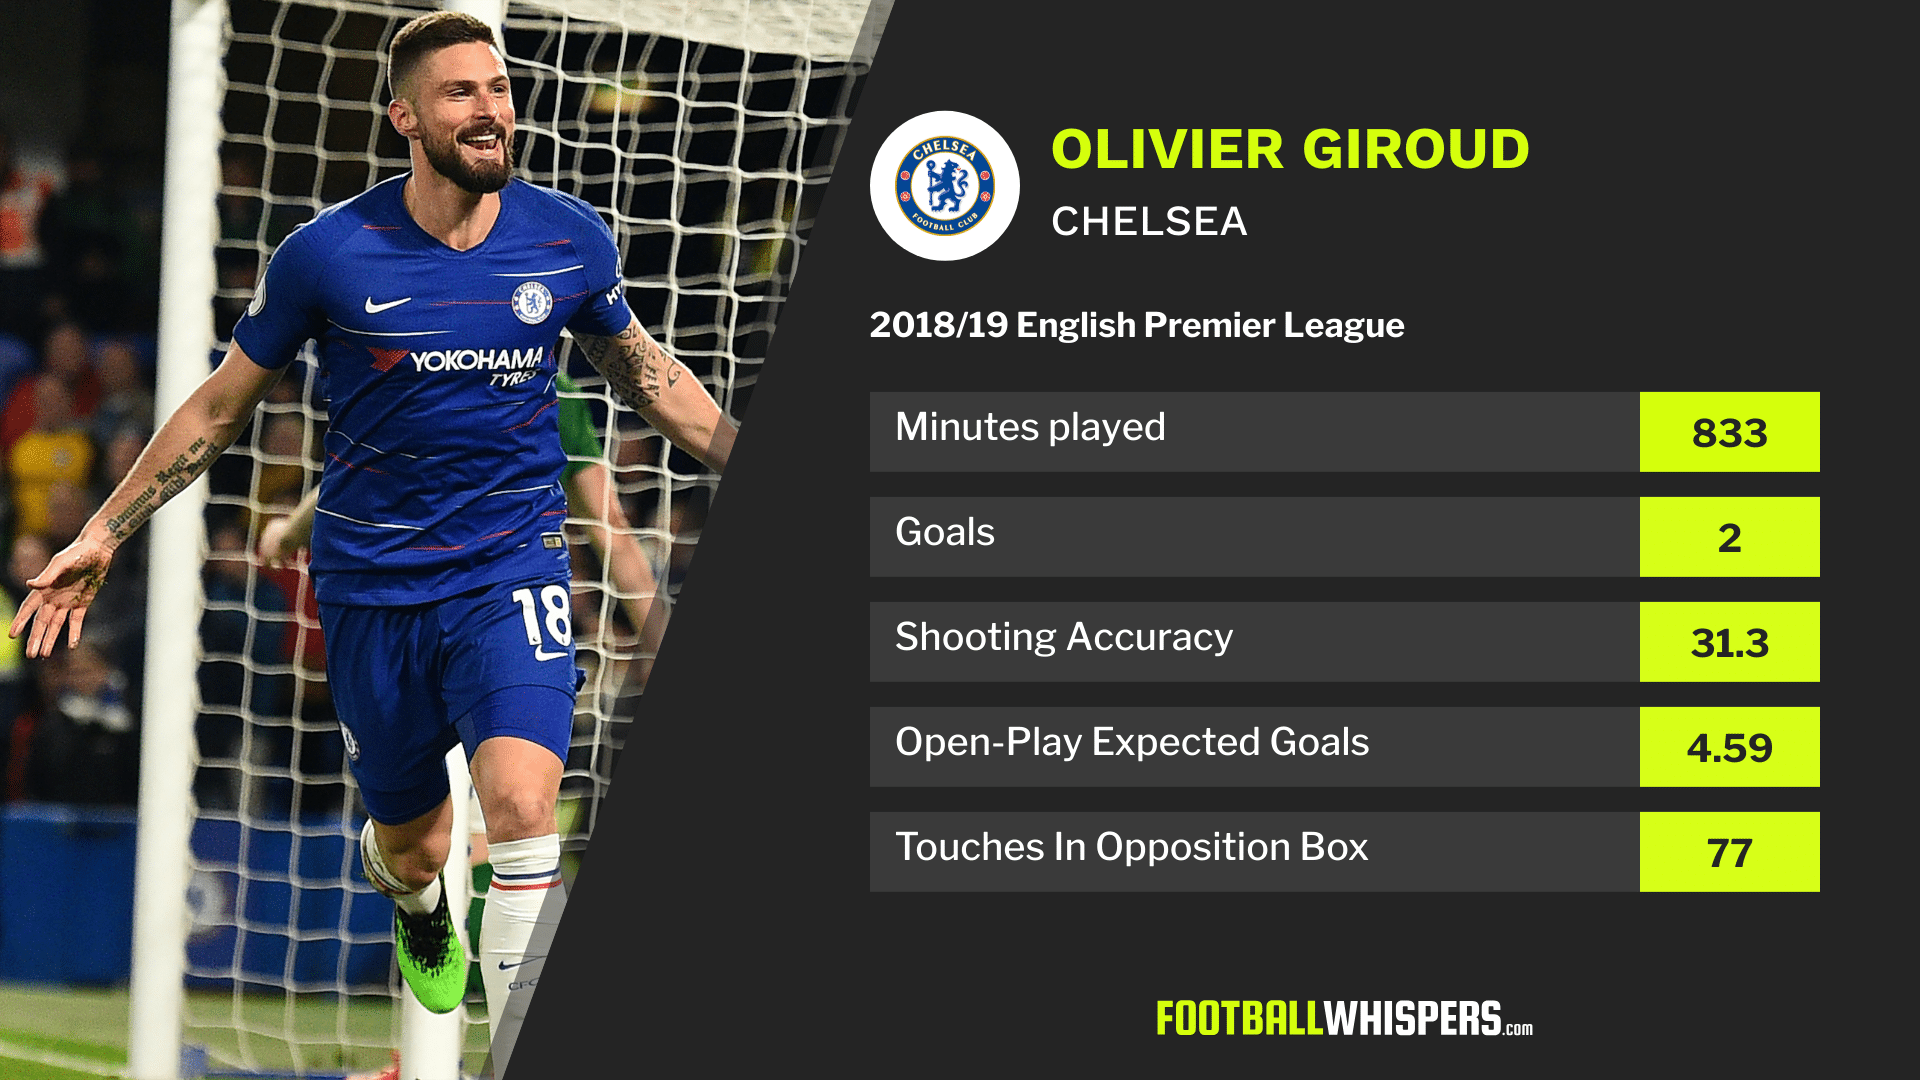 Premier League stats for Chelsea striker Olivier Giroud in 2018/19